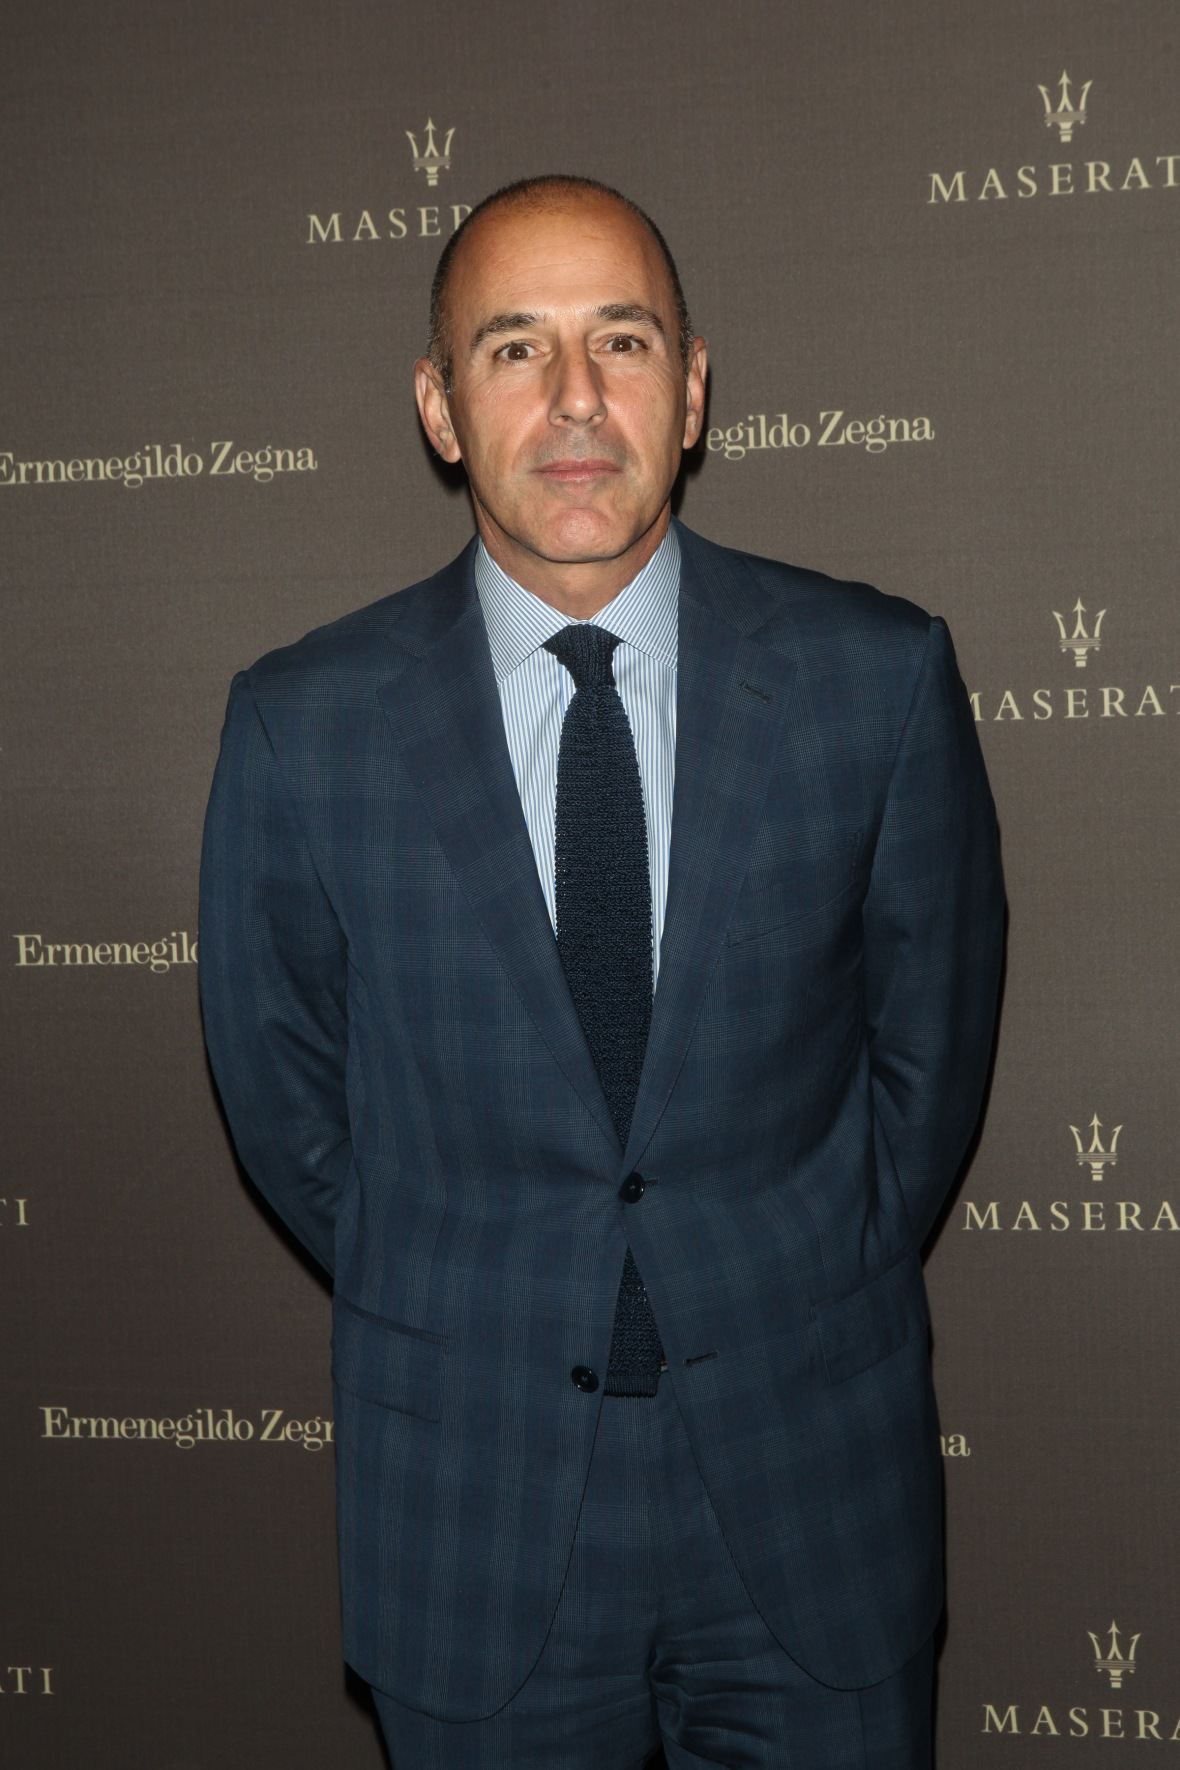 Matt Lauer's Friends Are 'Exhausted' By Him After Ronan Farrow Drama